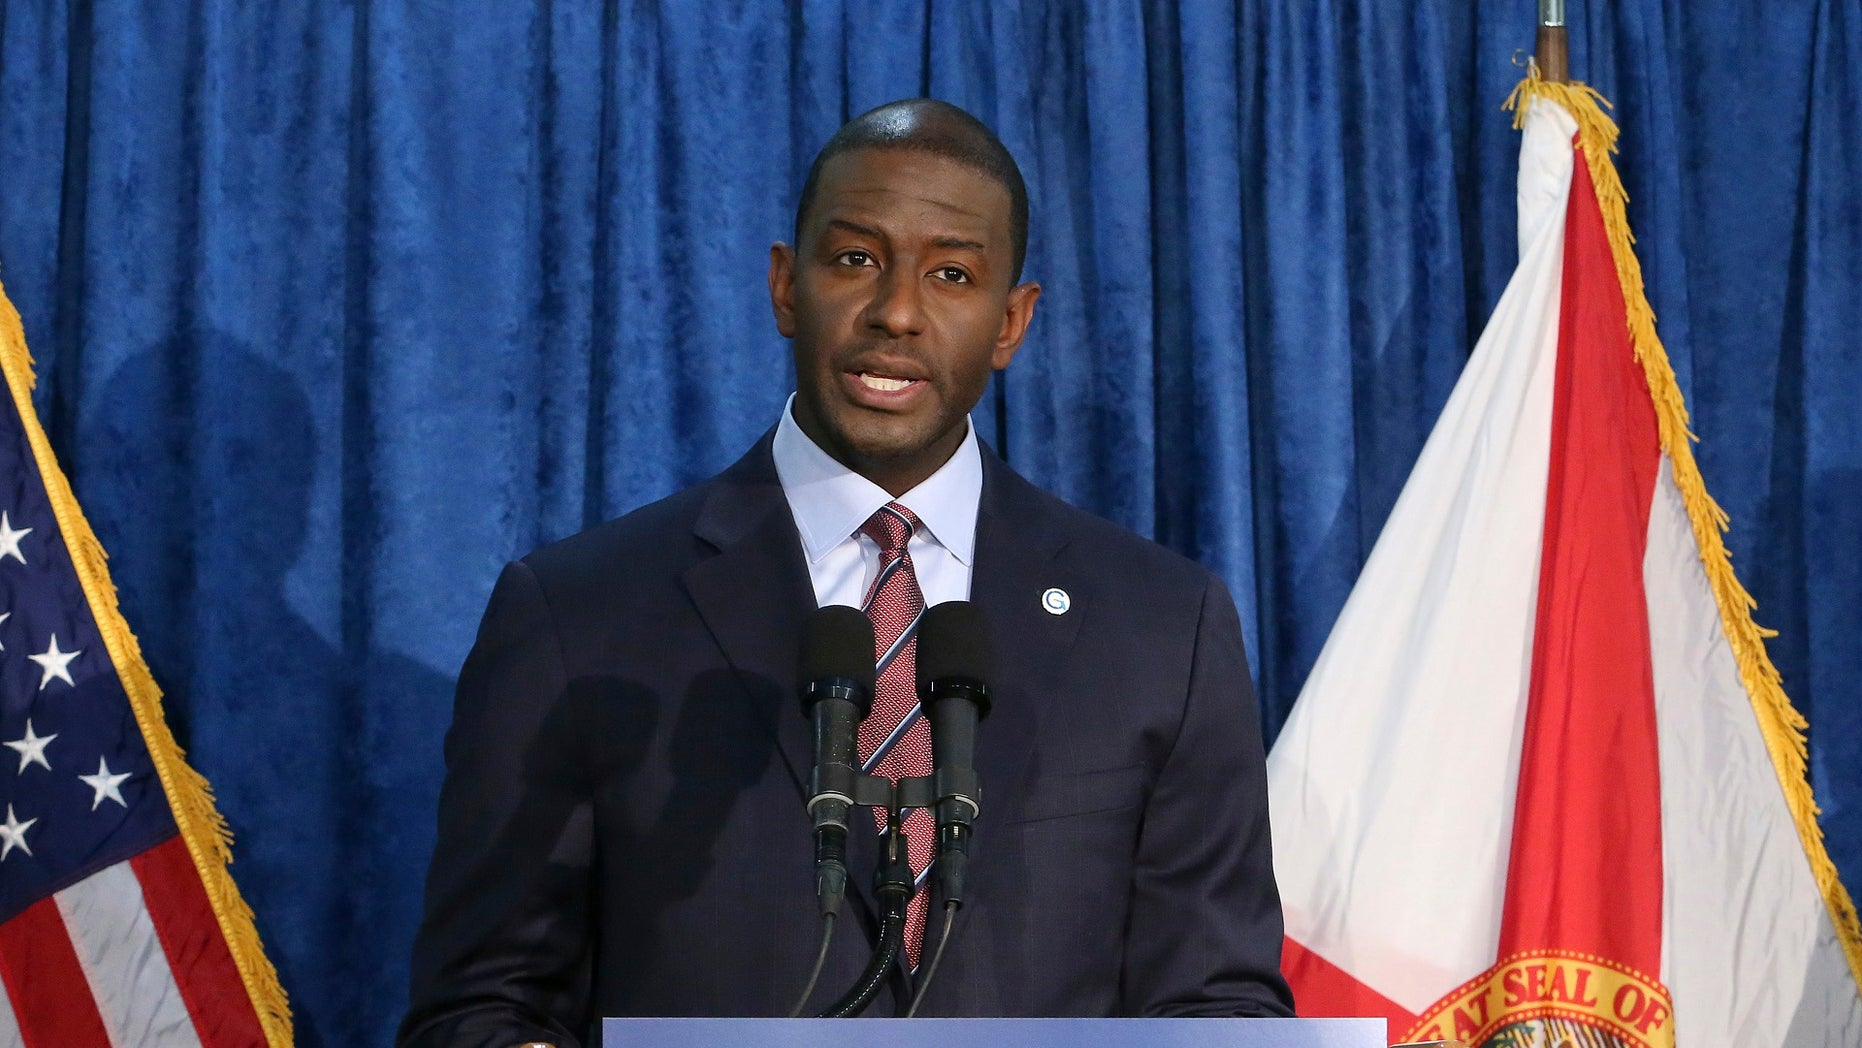 Andrew Gillum concedes Florida governor's race to Ron DeSantis""